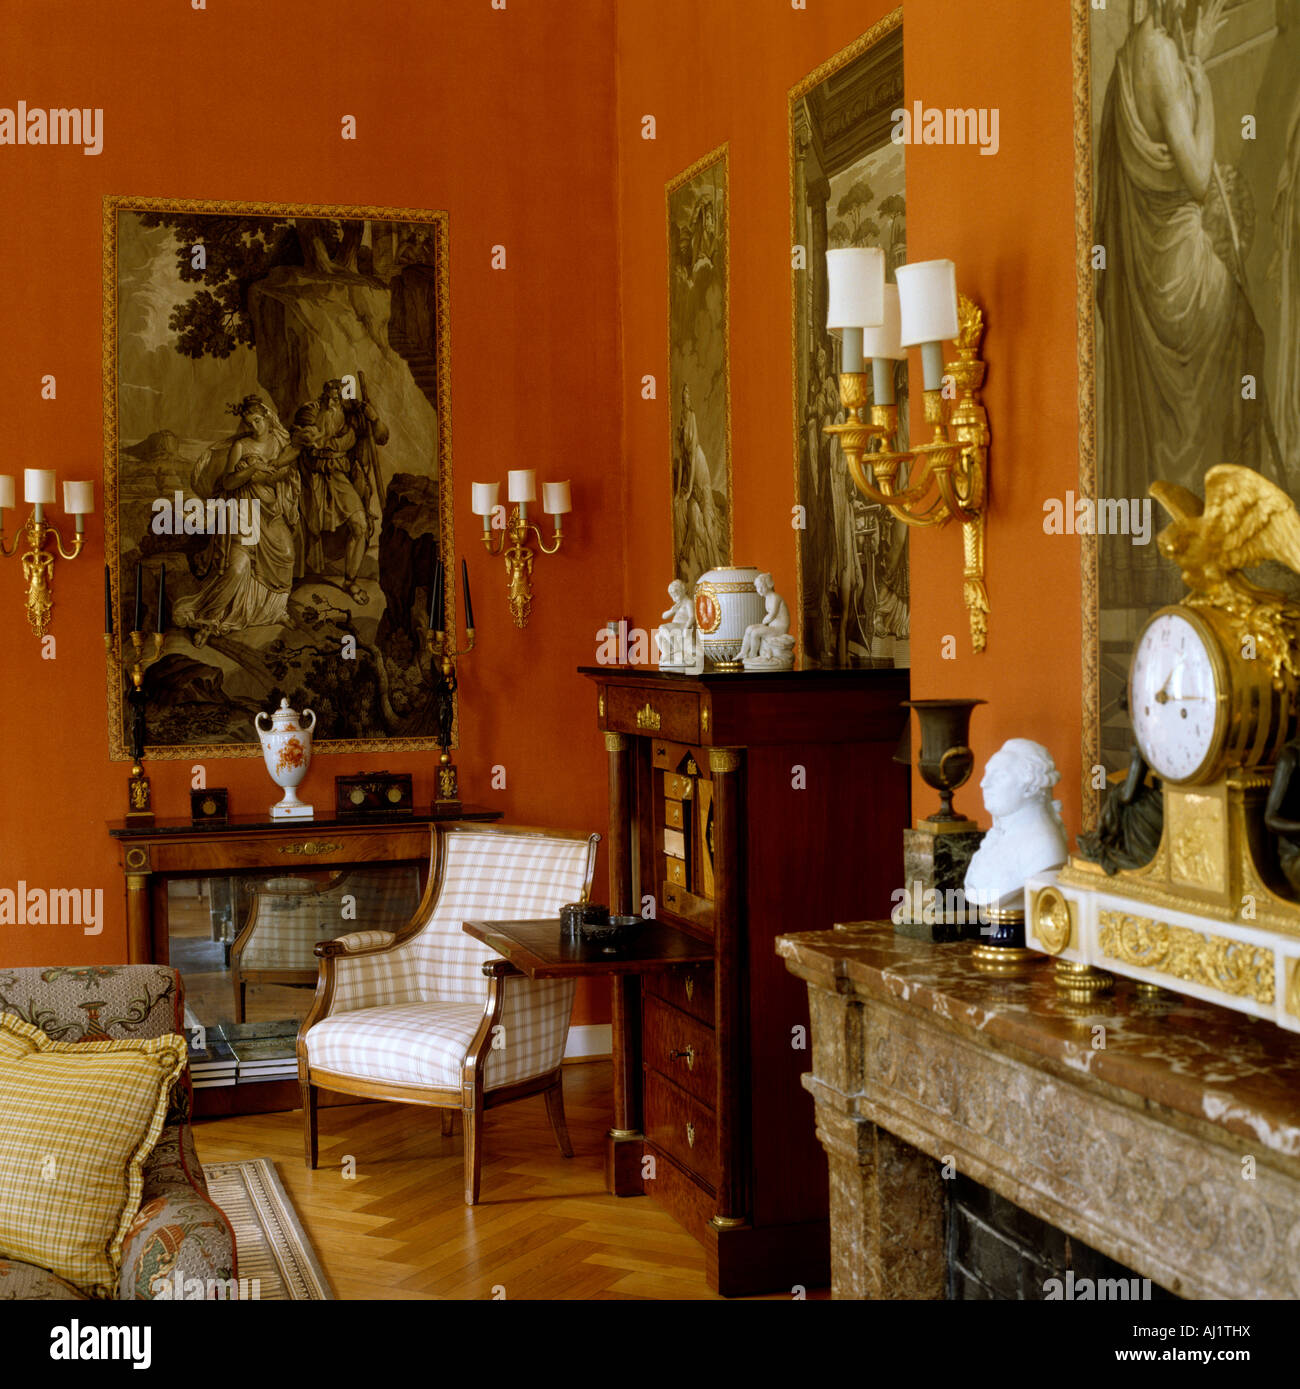 Section of red drawing room with antique furniture and marble mantelpiece  in historic German stately home - Section Of Red Drawing Room With Antique Furniture And Marble Stock